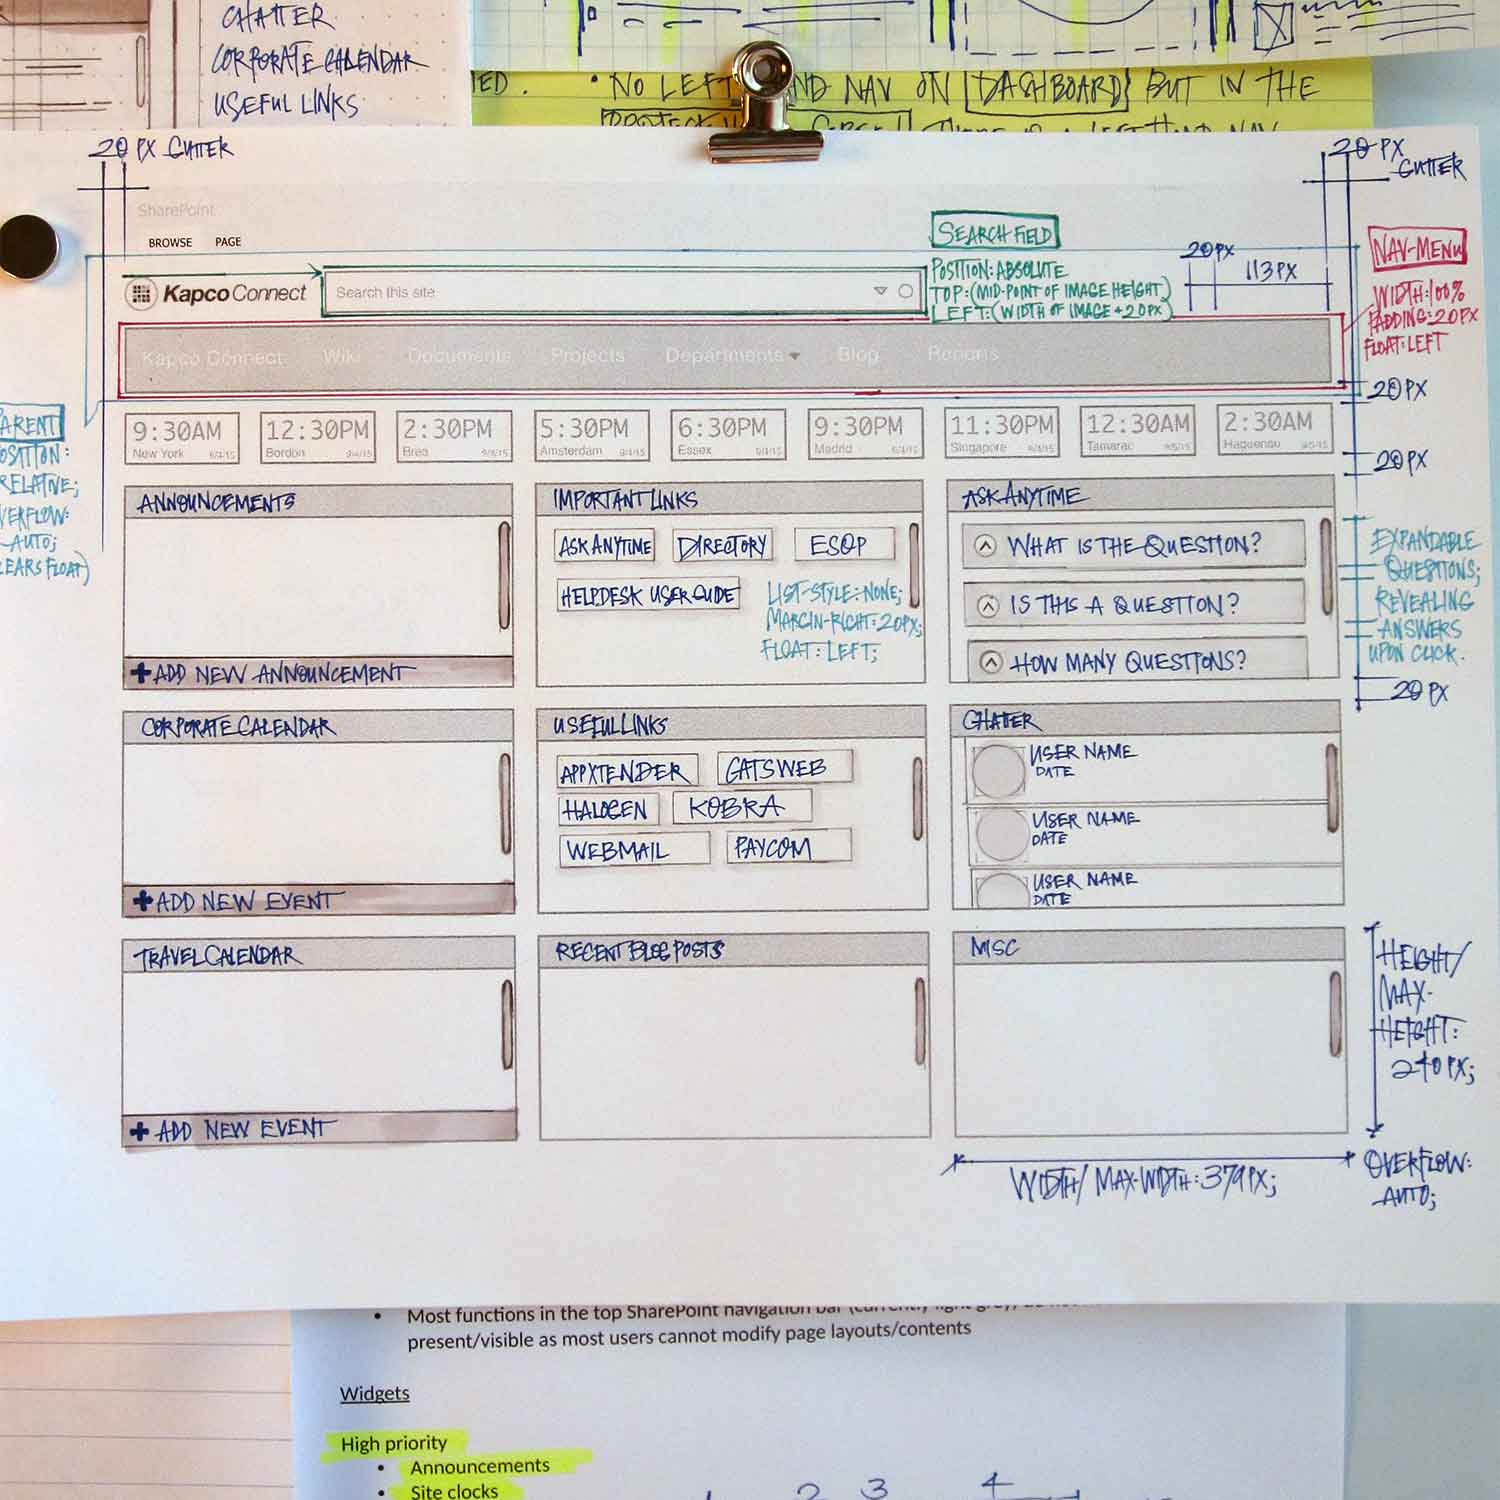 a photograph of some low-fidelity wireframes for the Kapco Global Sharepoint portal